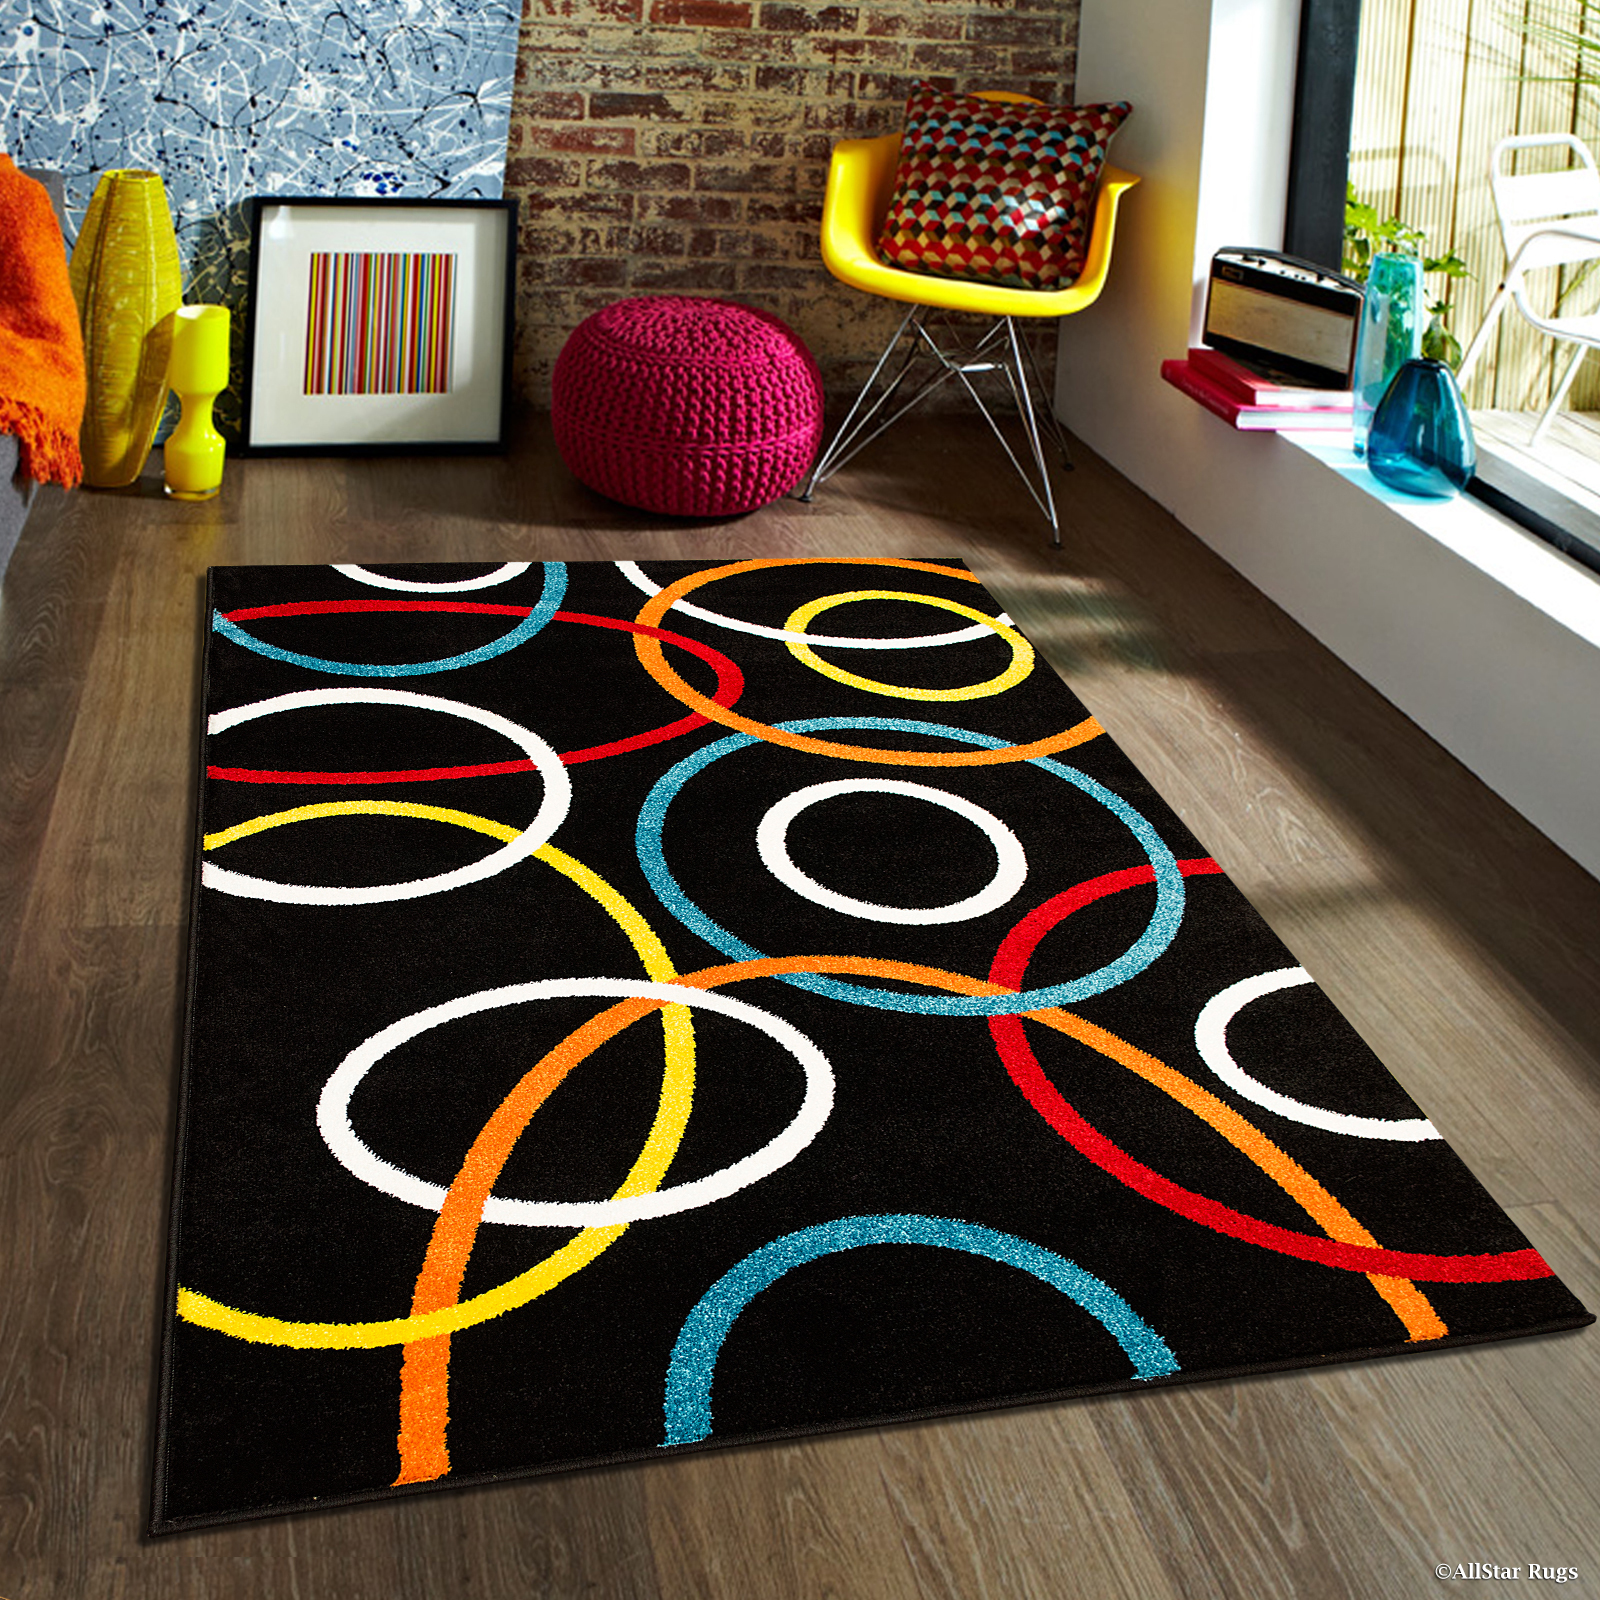 "Allstar Woven High Quality Colorfun. Burst of Colors. Contemporary. Modern. Geometric. Area Rug (5' x 6' 11"")"